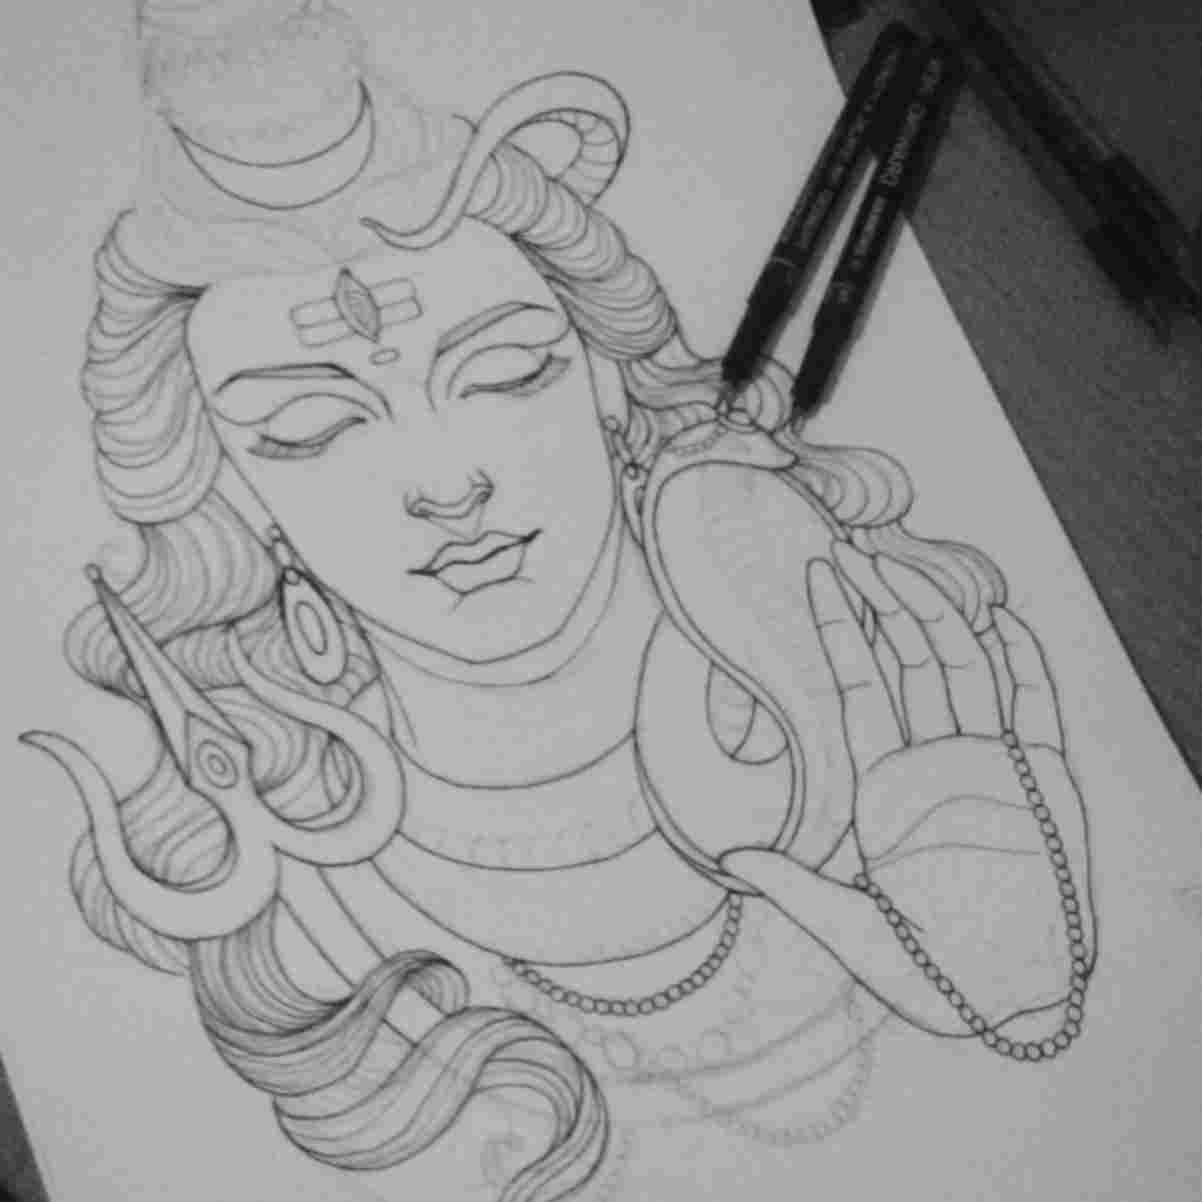 how to draw lord shiva face shiva drawing at paintingvalleycom explore collection shiva lord face how to draw